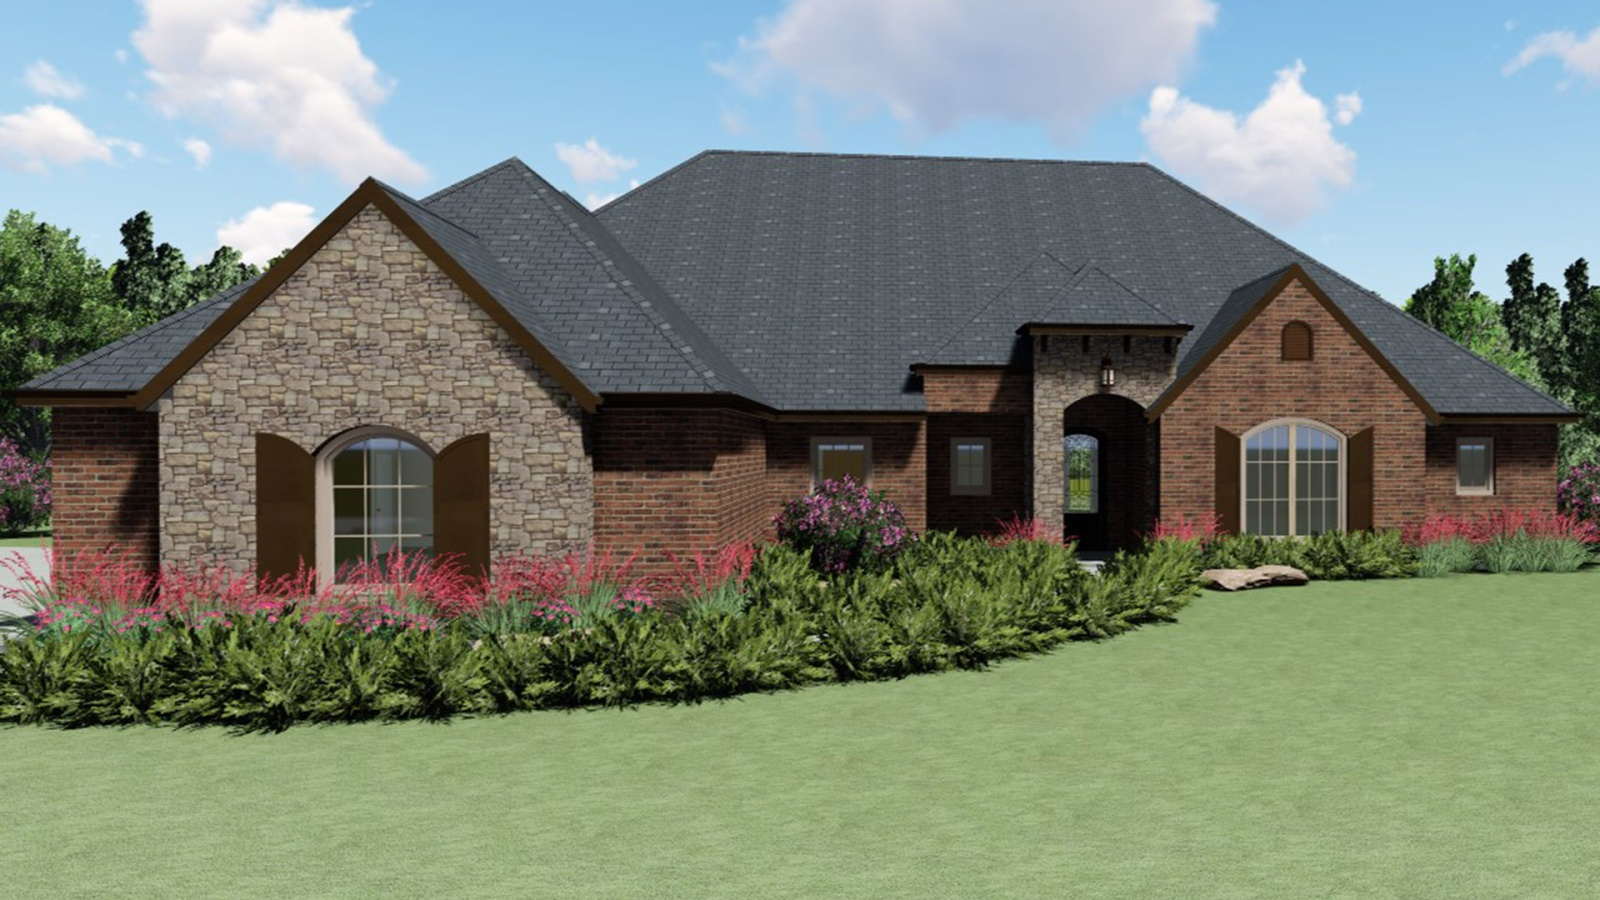 3 Bedrooms Bedrooms, ,2 BathroomsBathrooms,Custom Home,Home Plans,1024